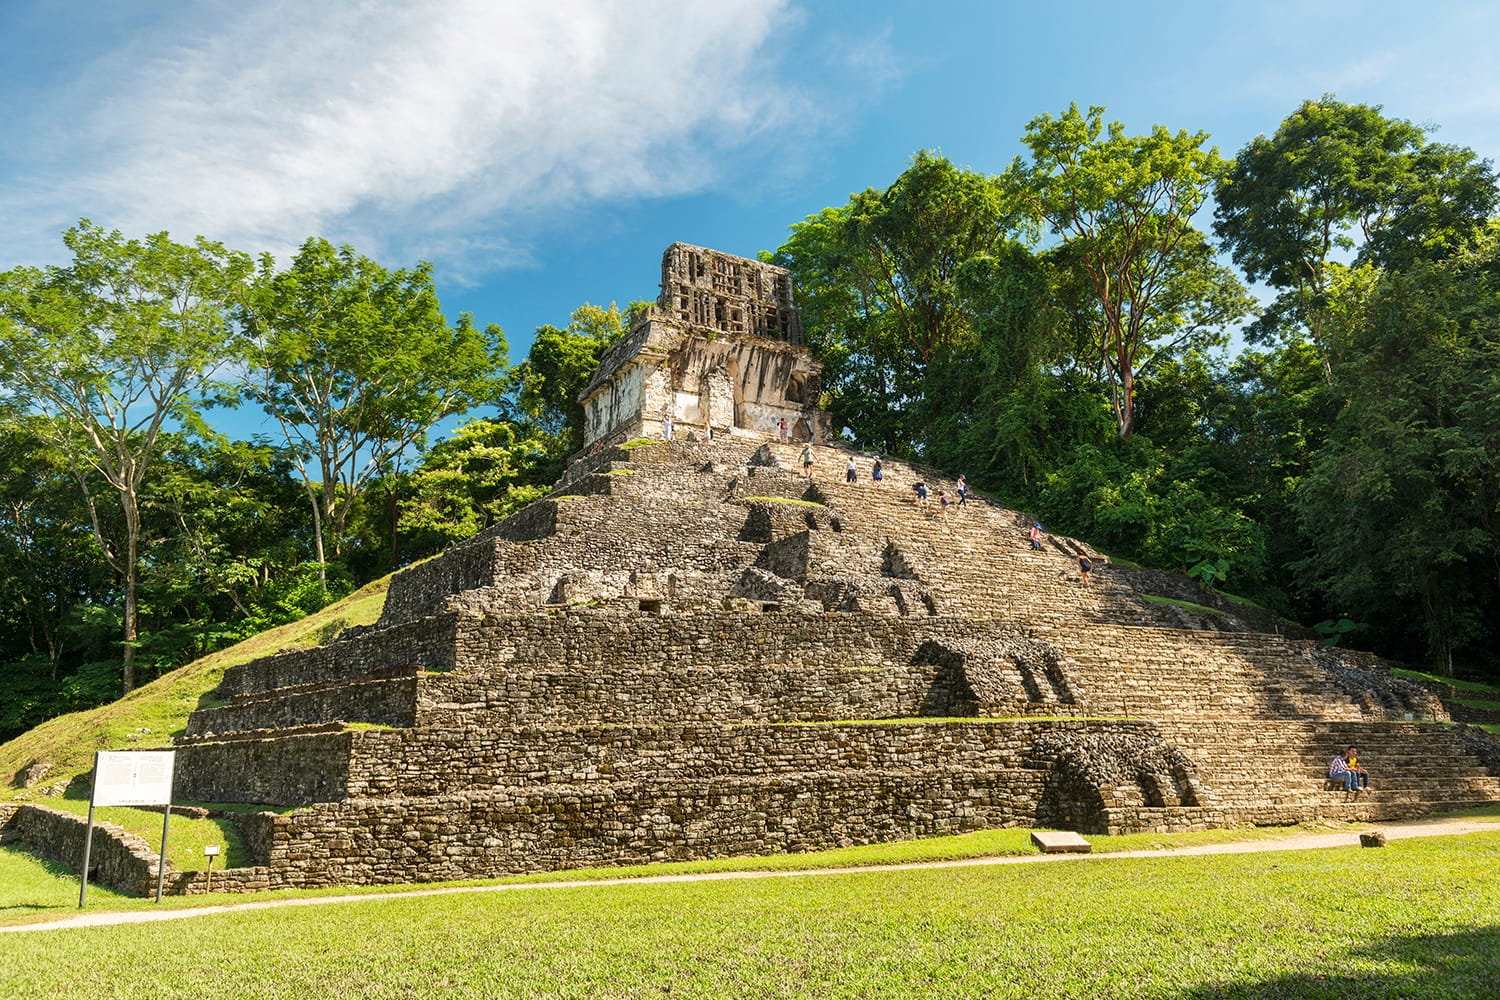 Unknown people explore the mayan temple ruins surrounded by dense jungle in Palenque Mexico